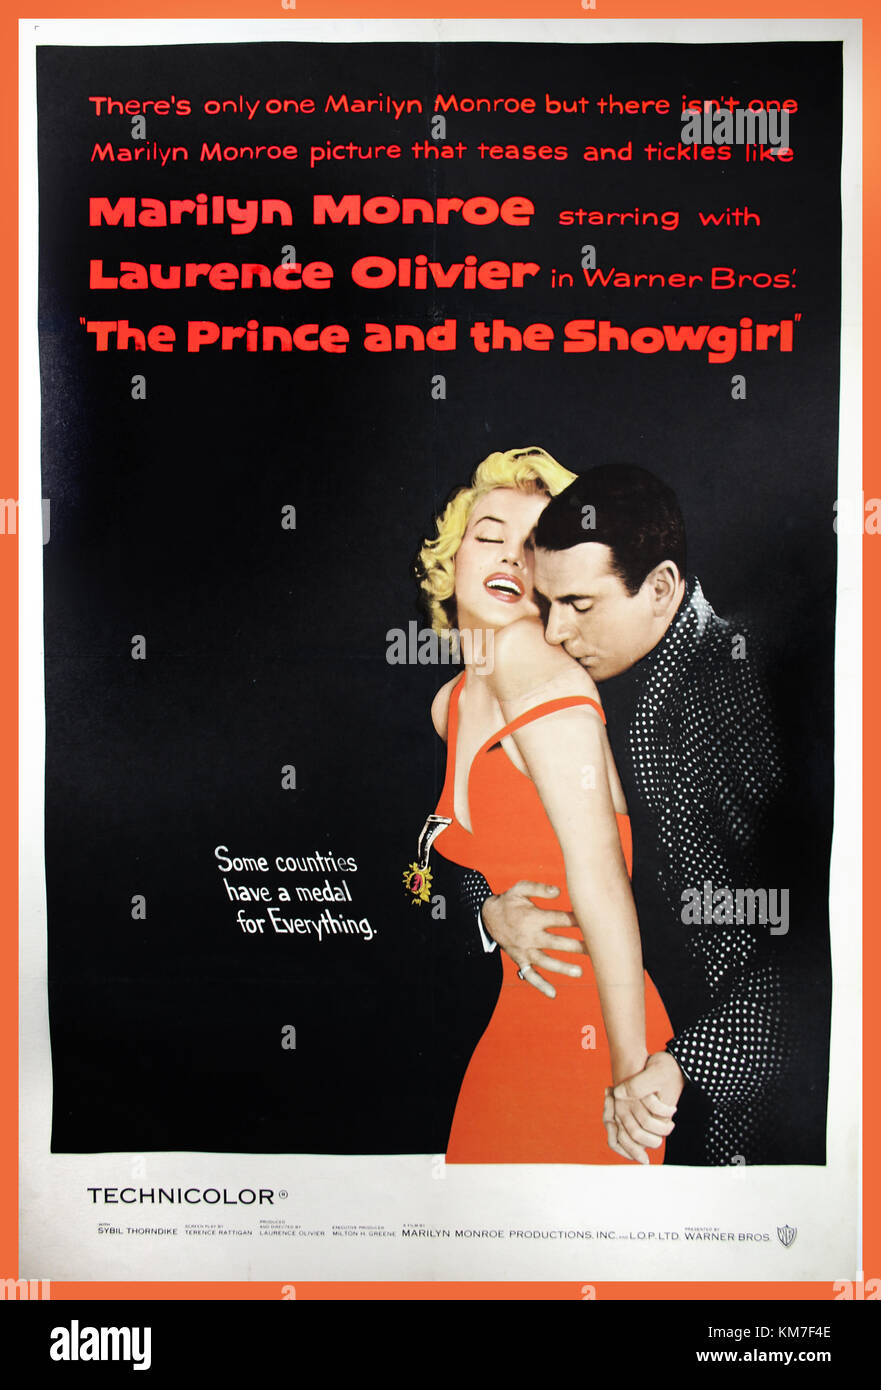 Vintage Movie Poster THE PRINCE AND THE SHOWGIRL, 1957. Movie Poster starring Marilyn Monroe and Laurence Olivier; - Stock Image